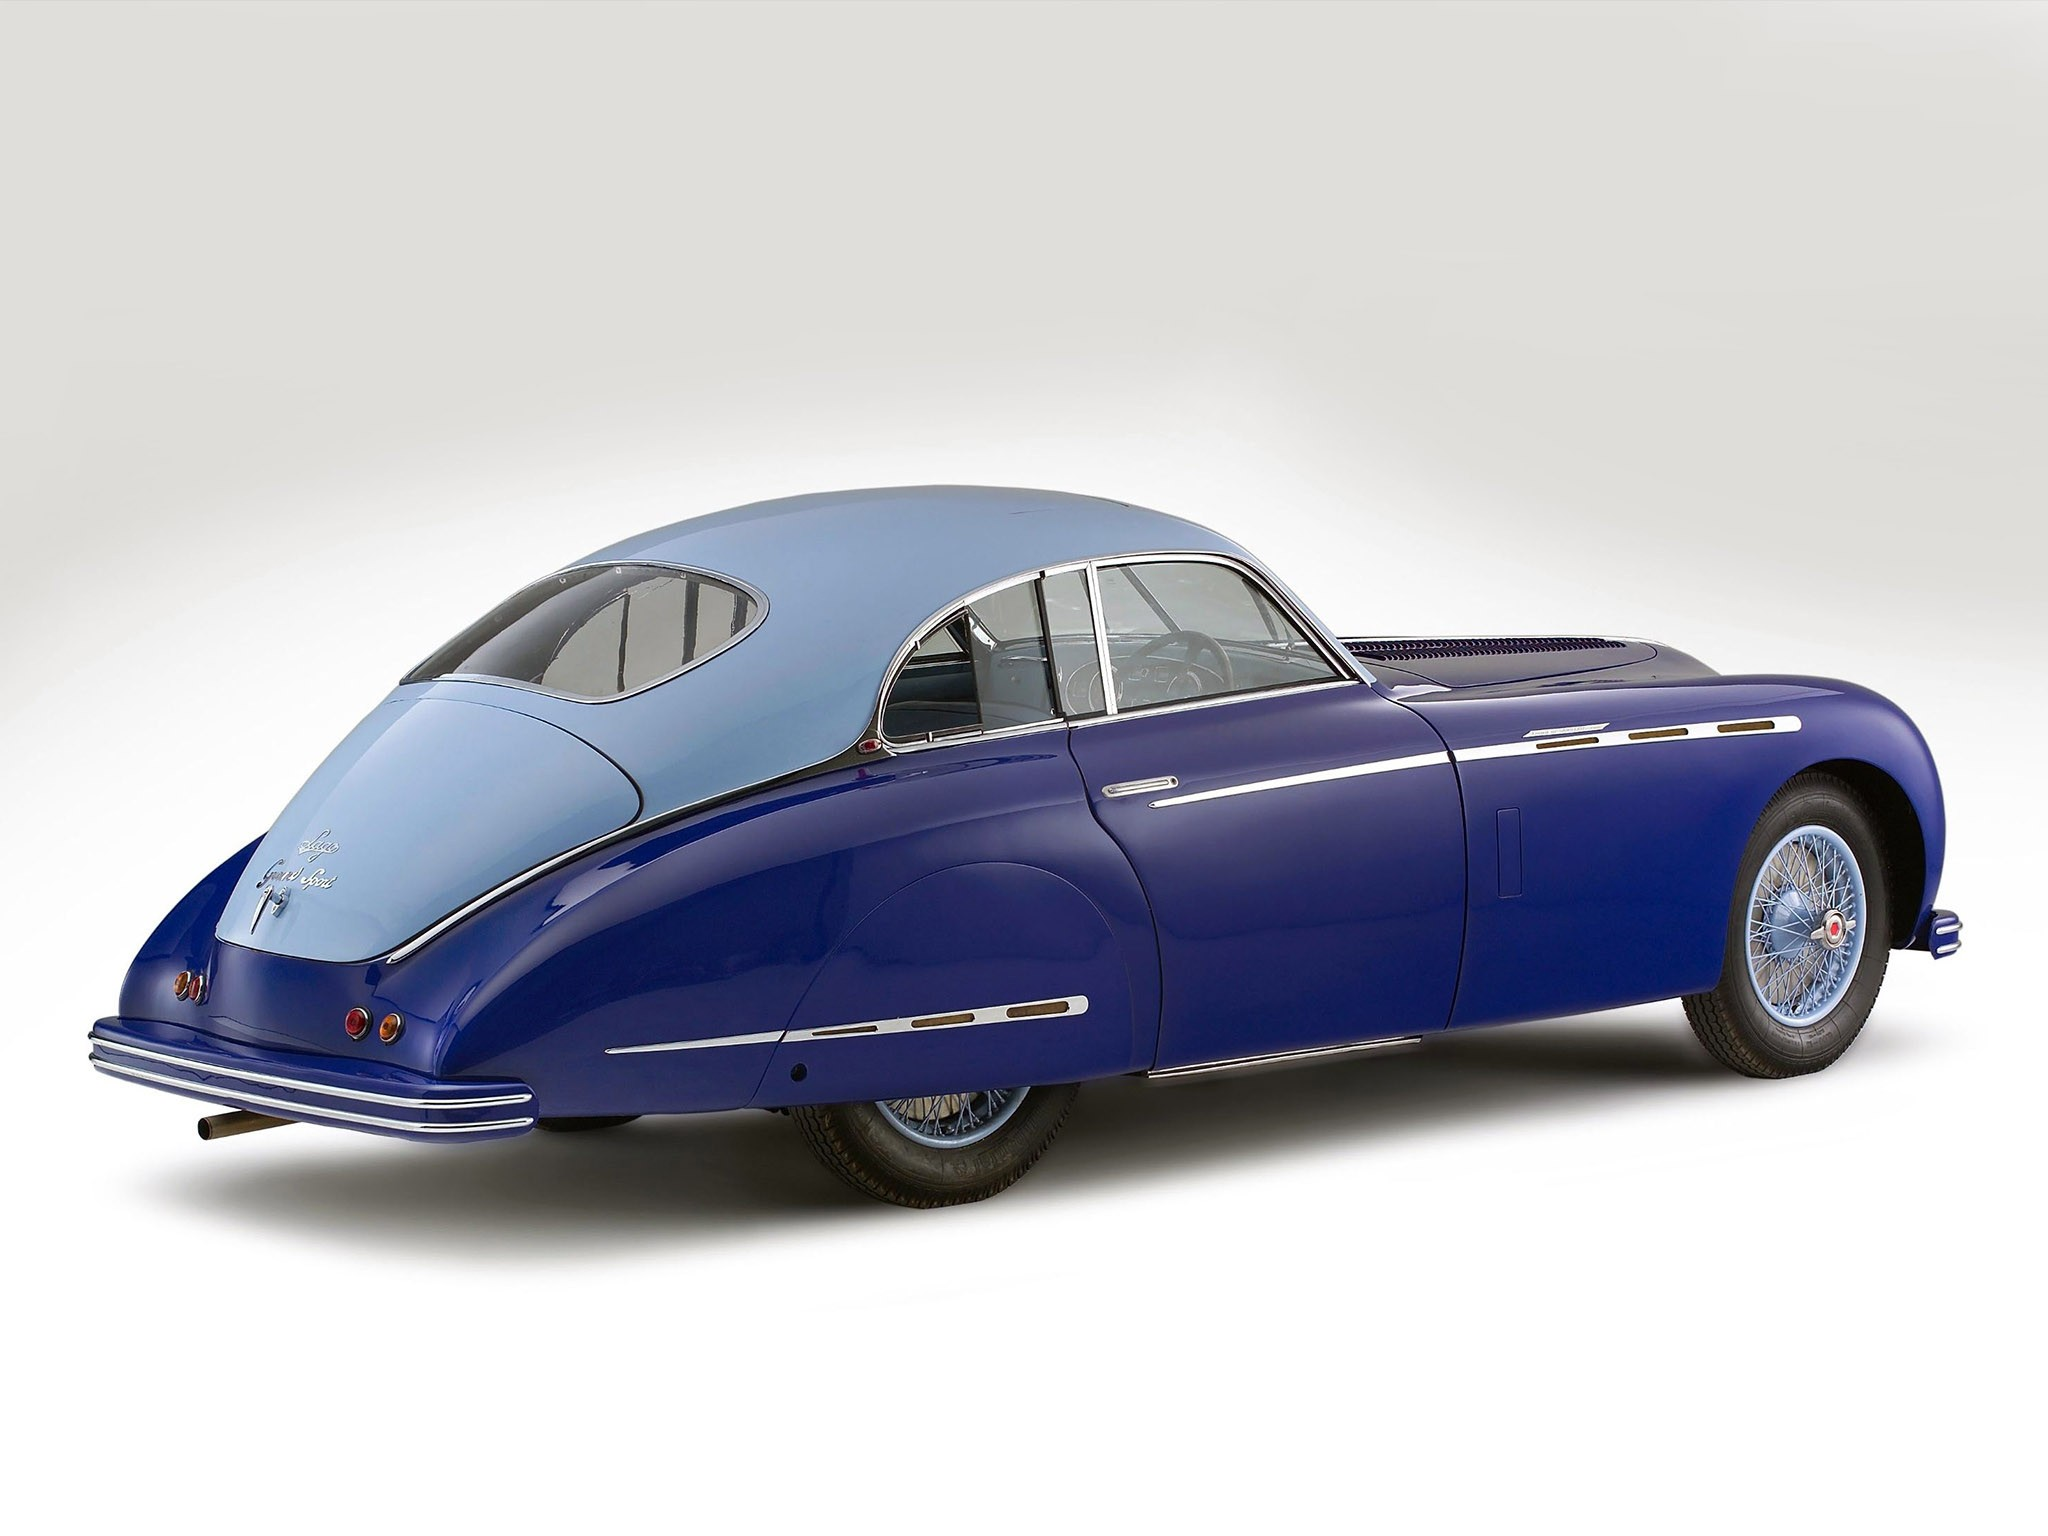 1951 Talbot Lago T26 GS Coupe by Saoutchik